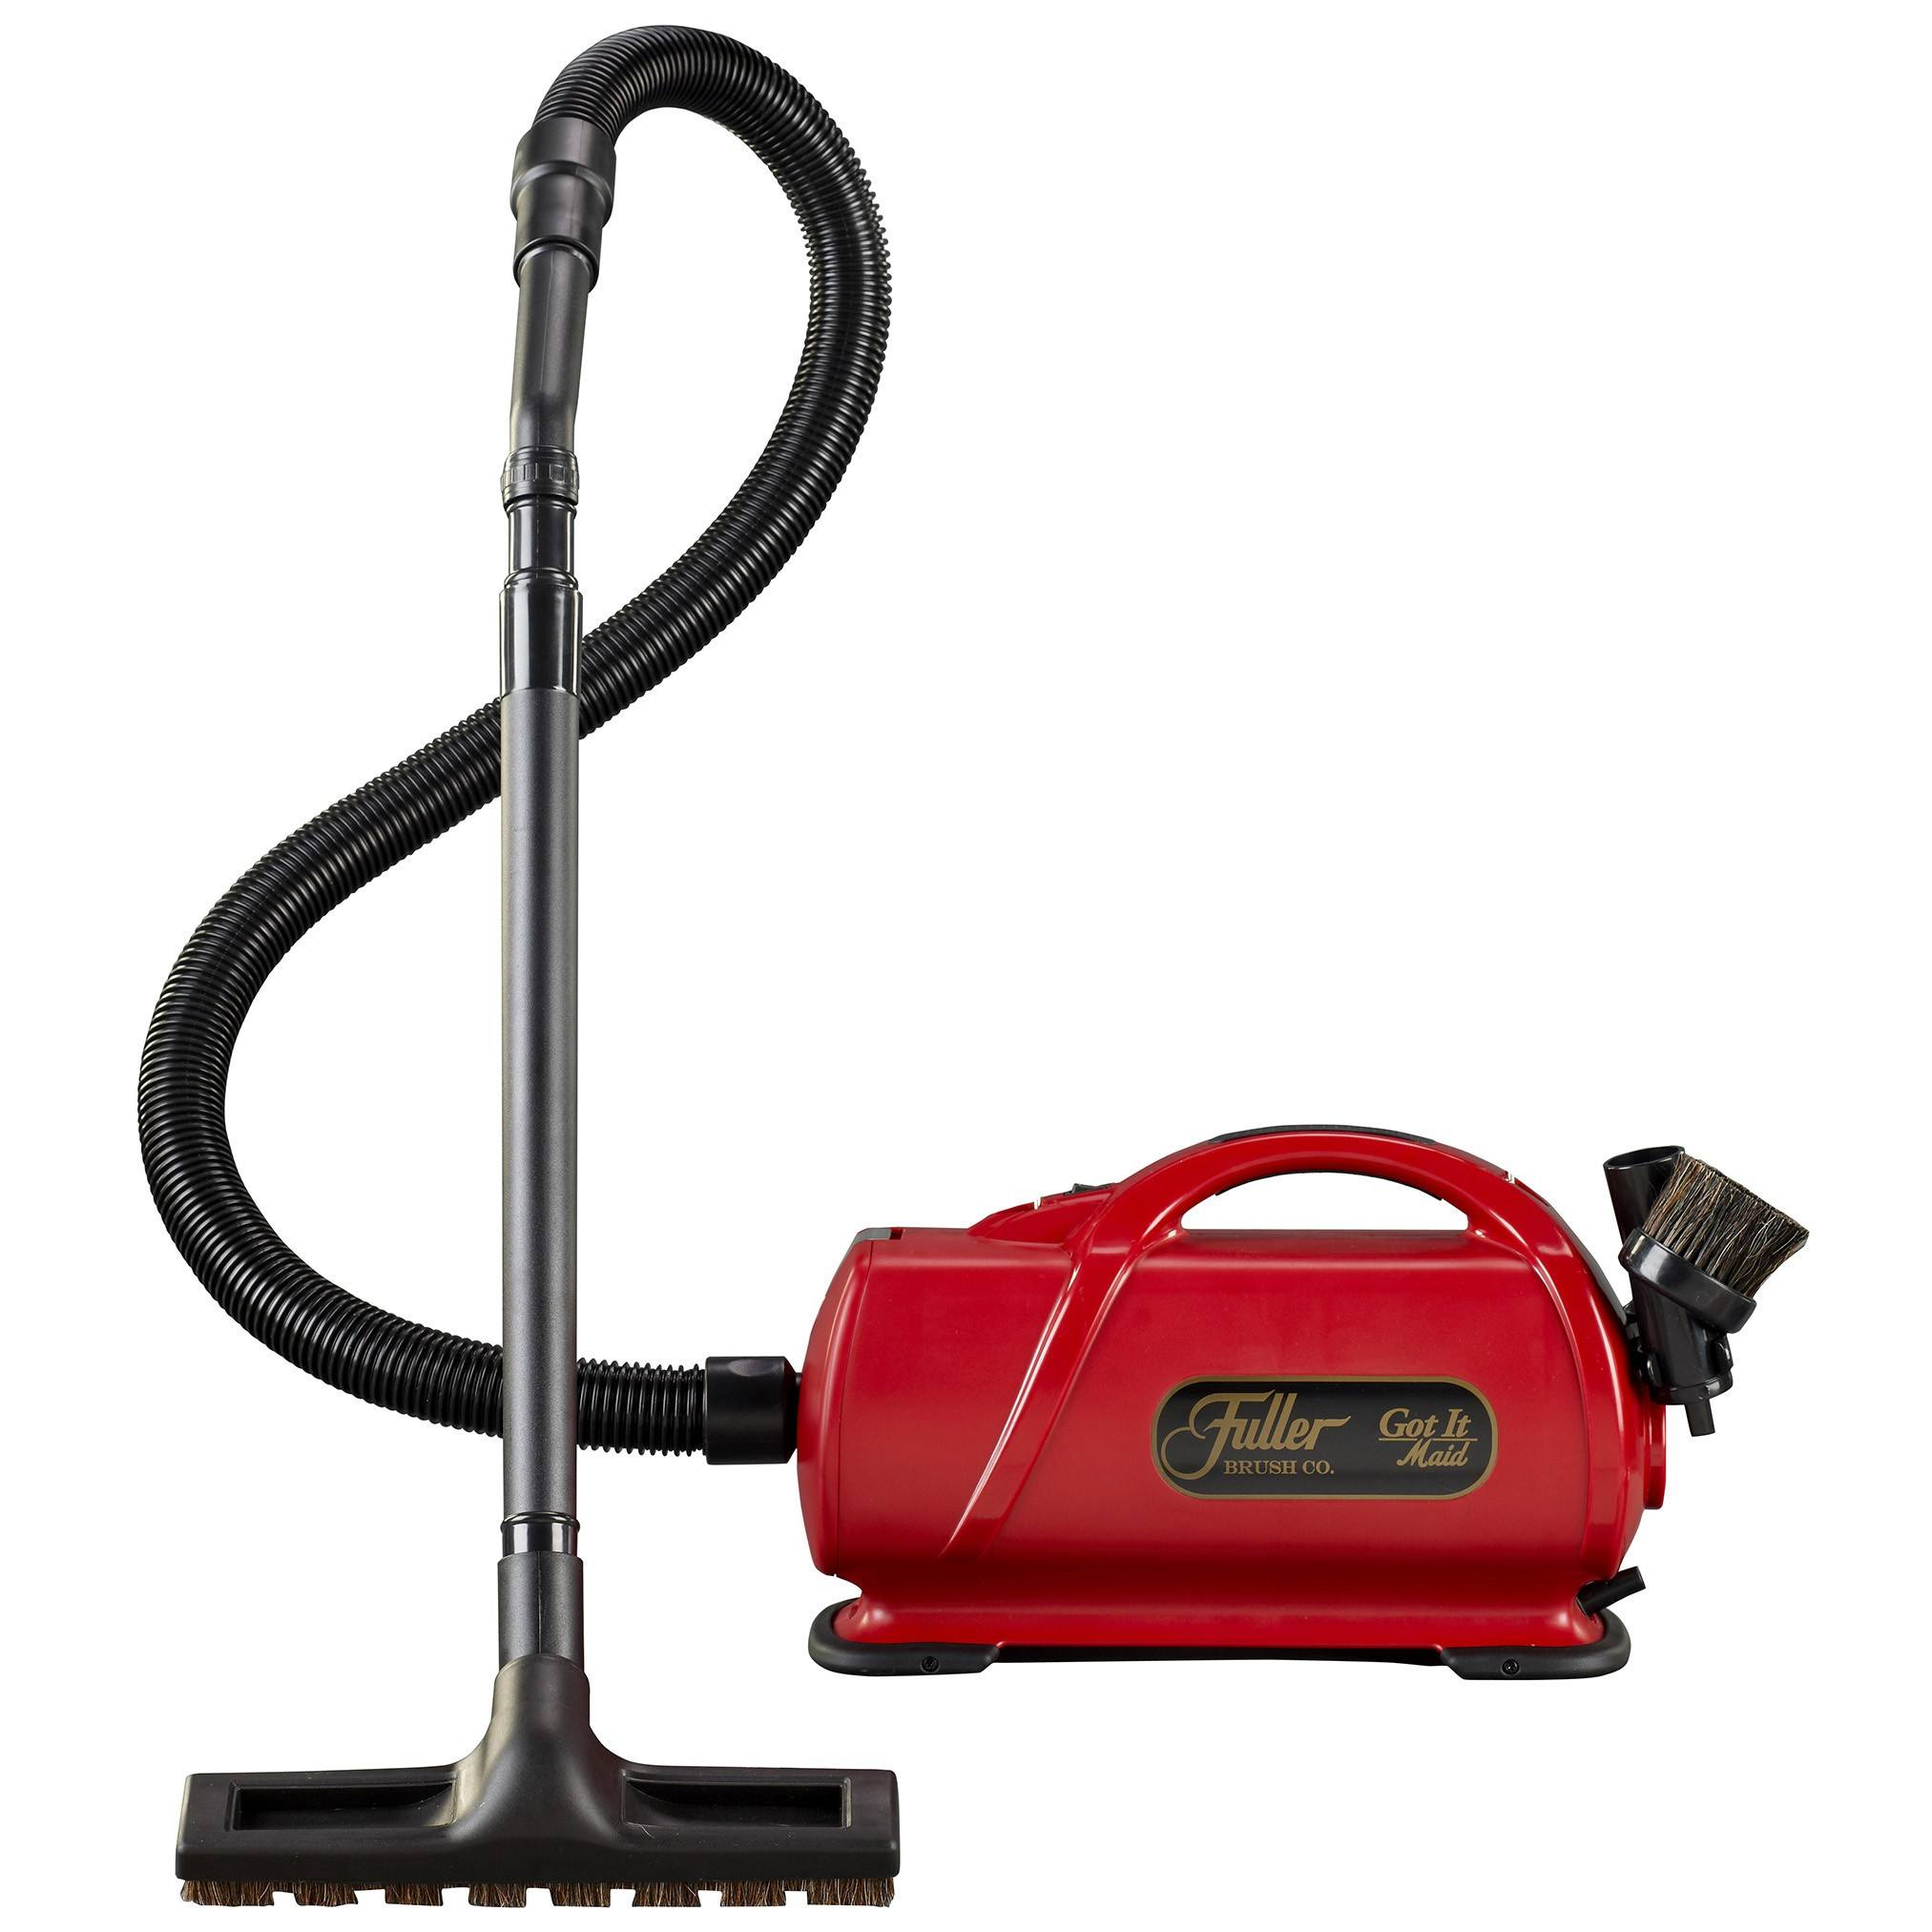 Fuller Brush Portable Canister Vacuum Cleaner